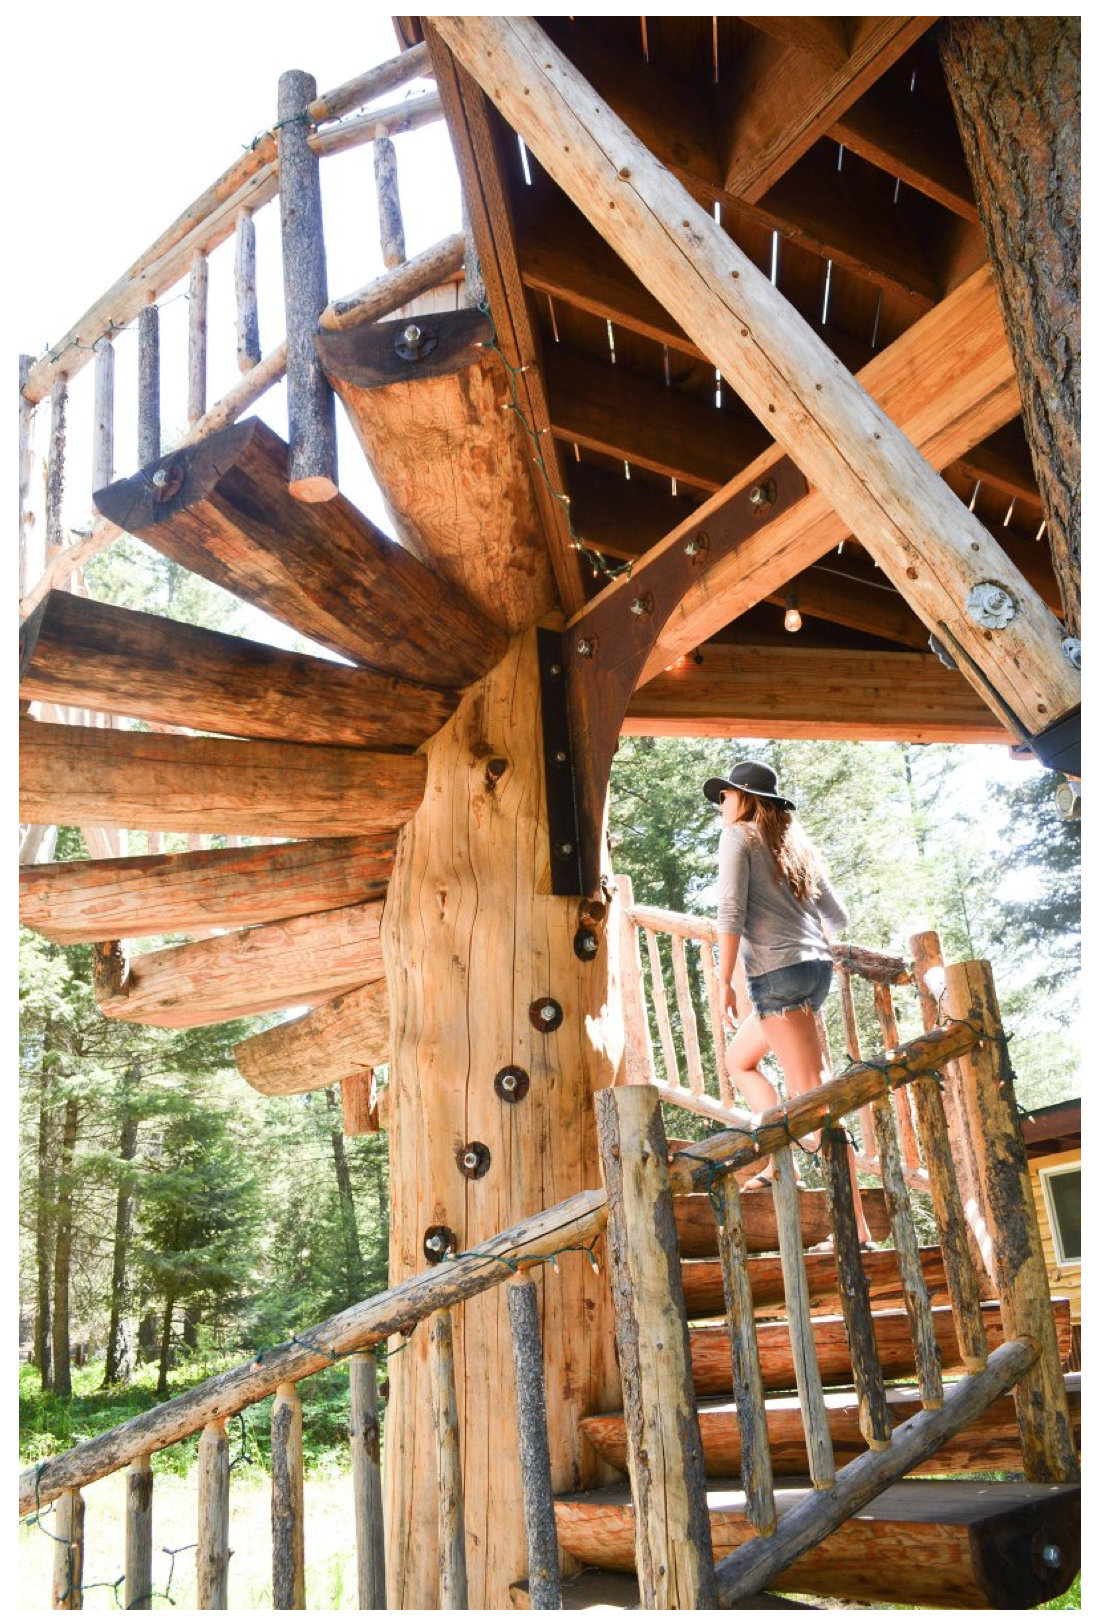 Montana Treehouse Retreat Outside Magazine 5